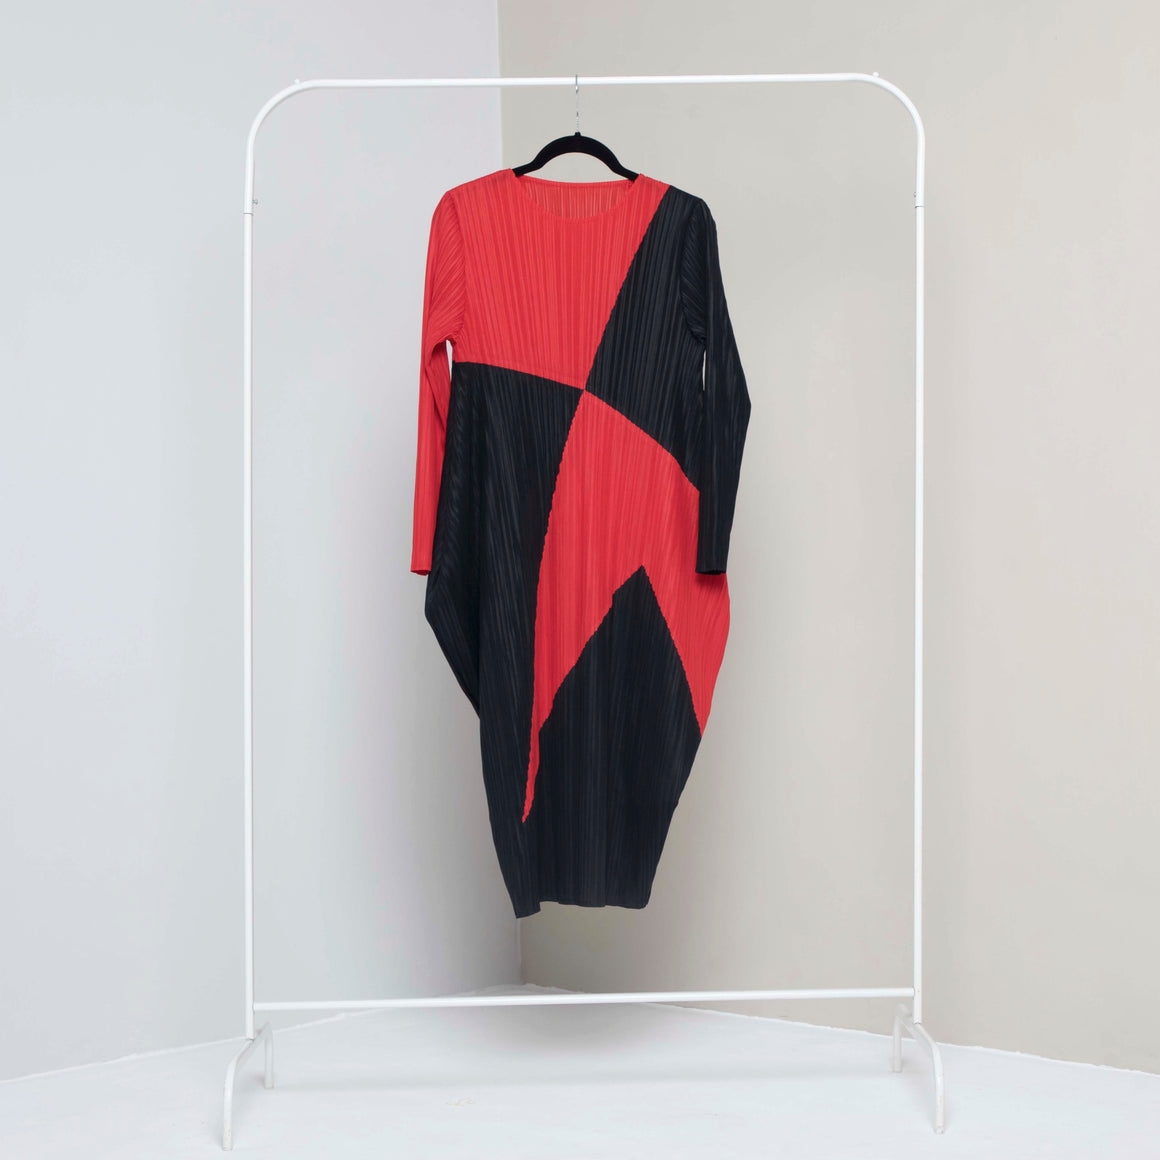 Absinthe Abstract Dress - Black & Red